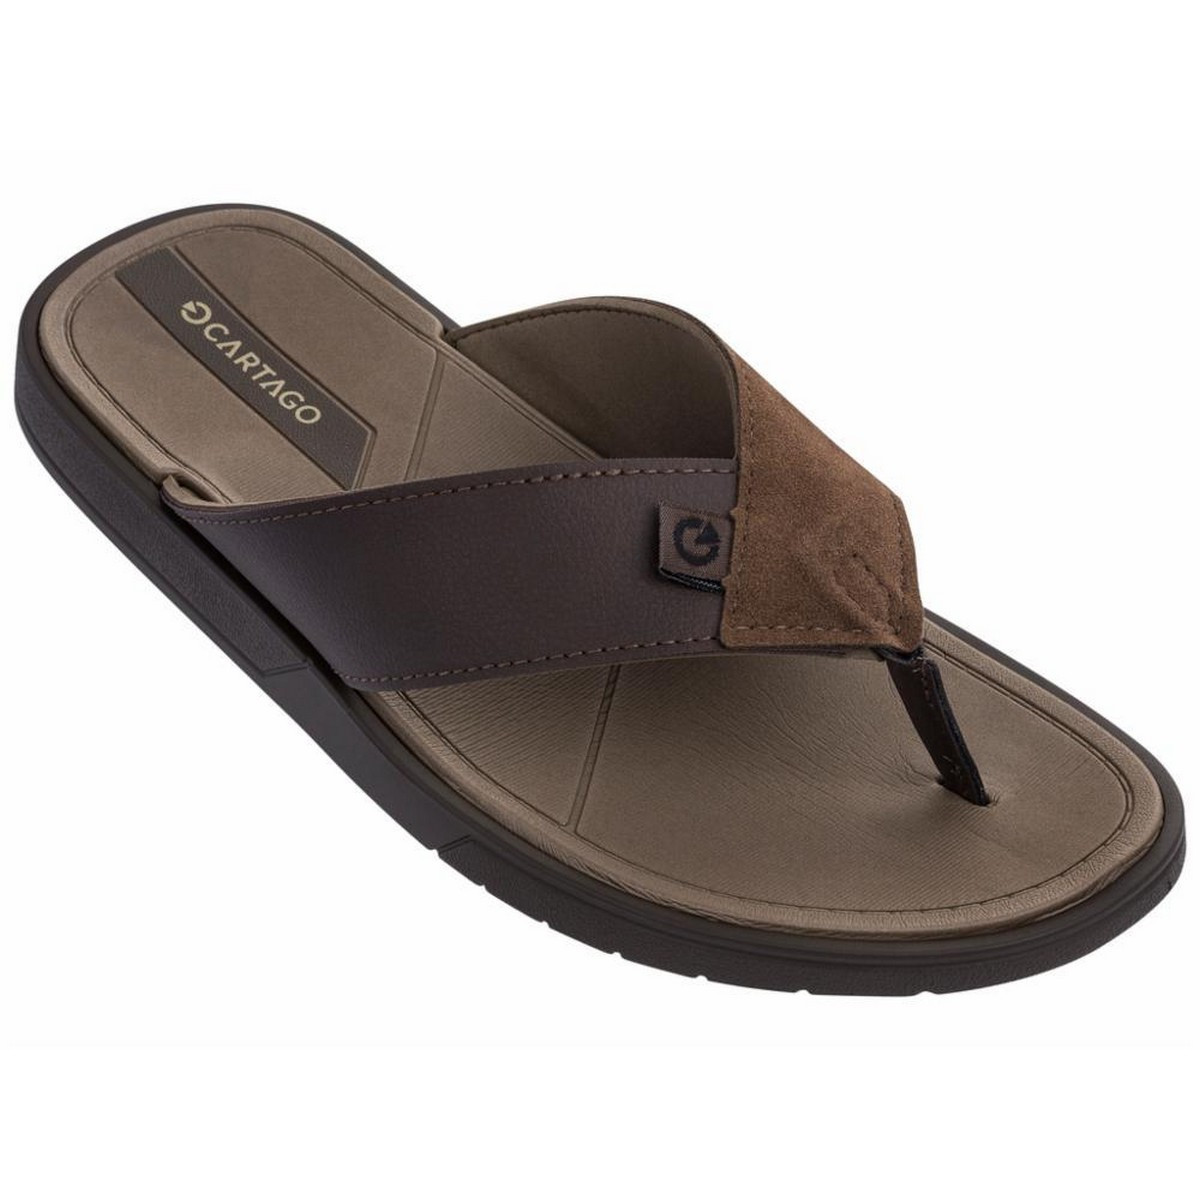 Вьетнамки Cartago Men 11377 23828/BROWN FLIP FLOP